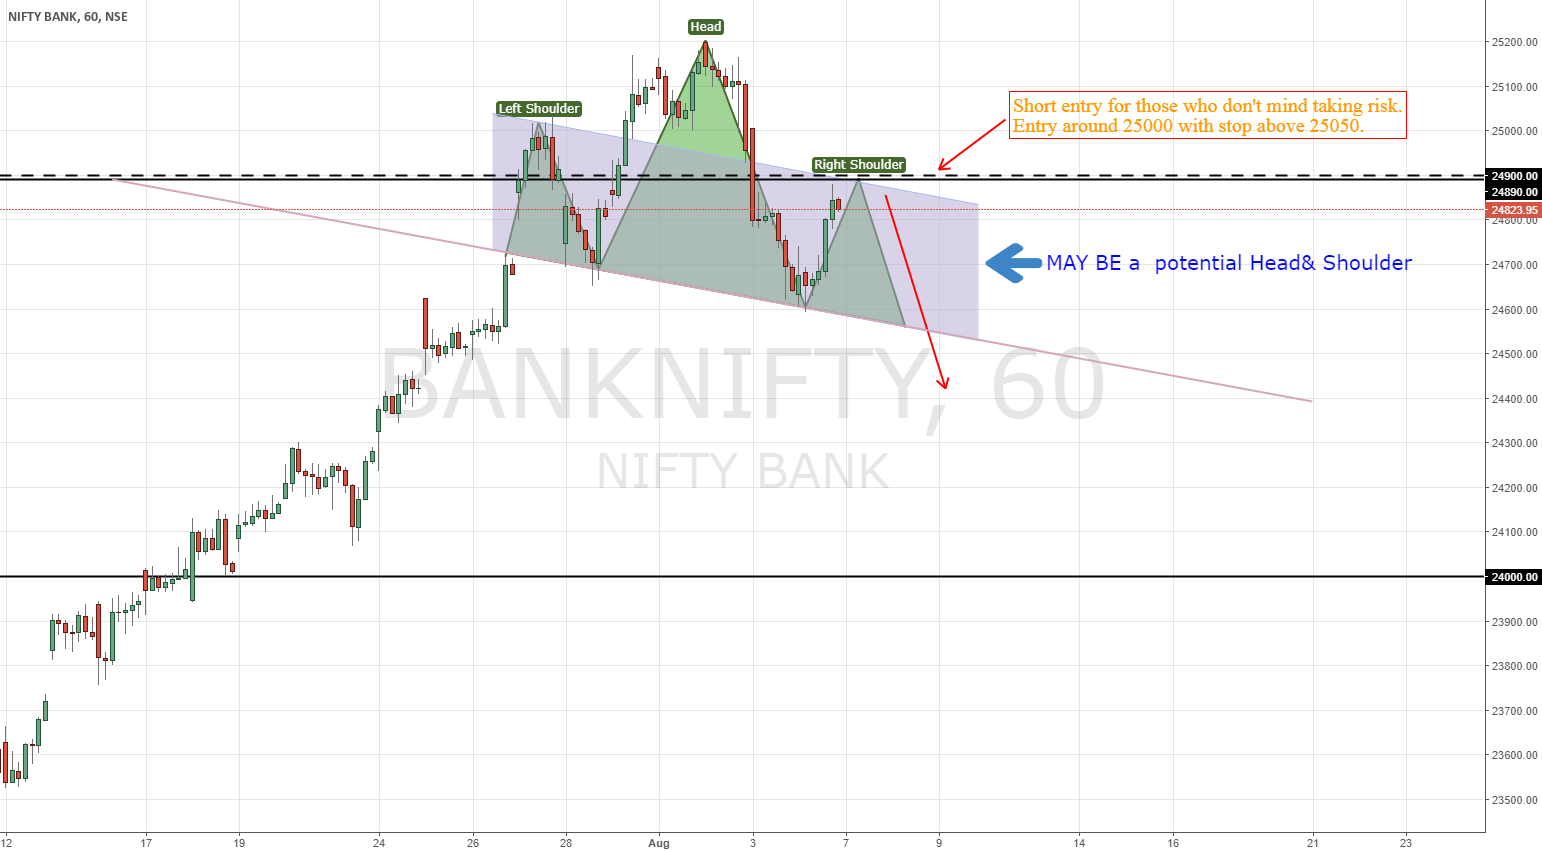 BANK NIFTY | Just another possibility